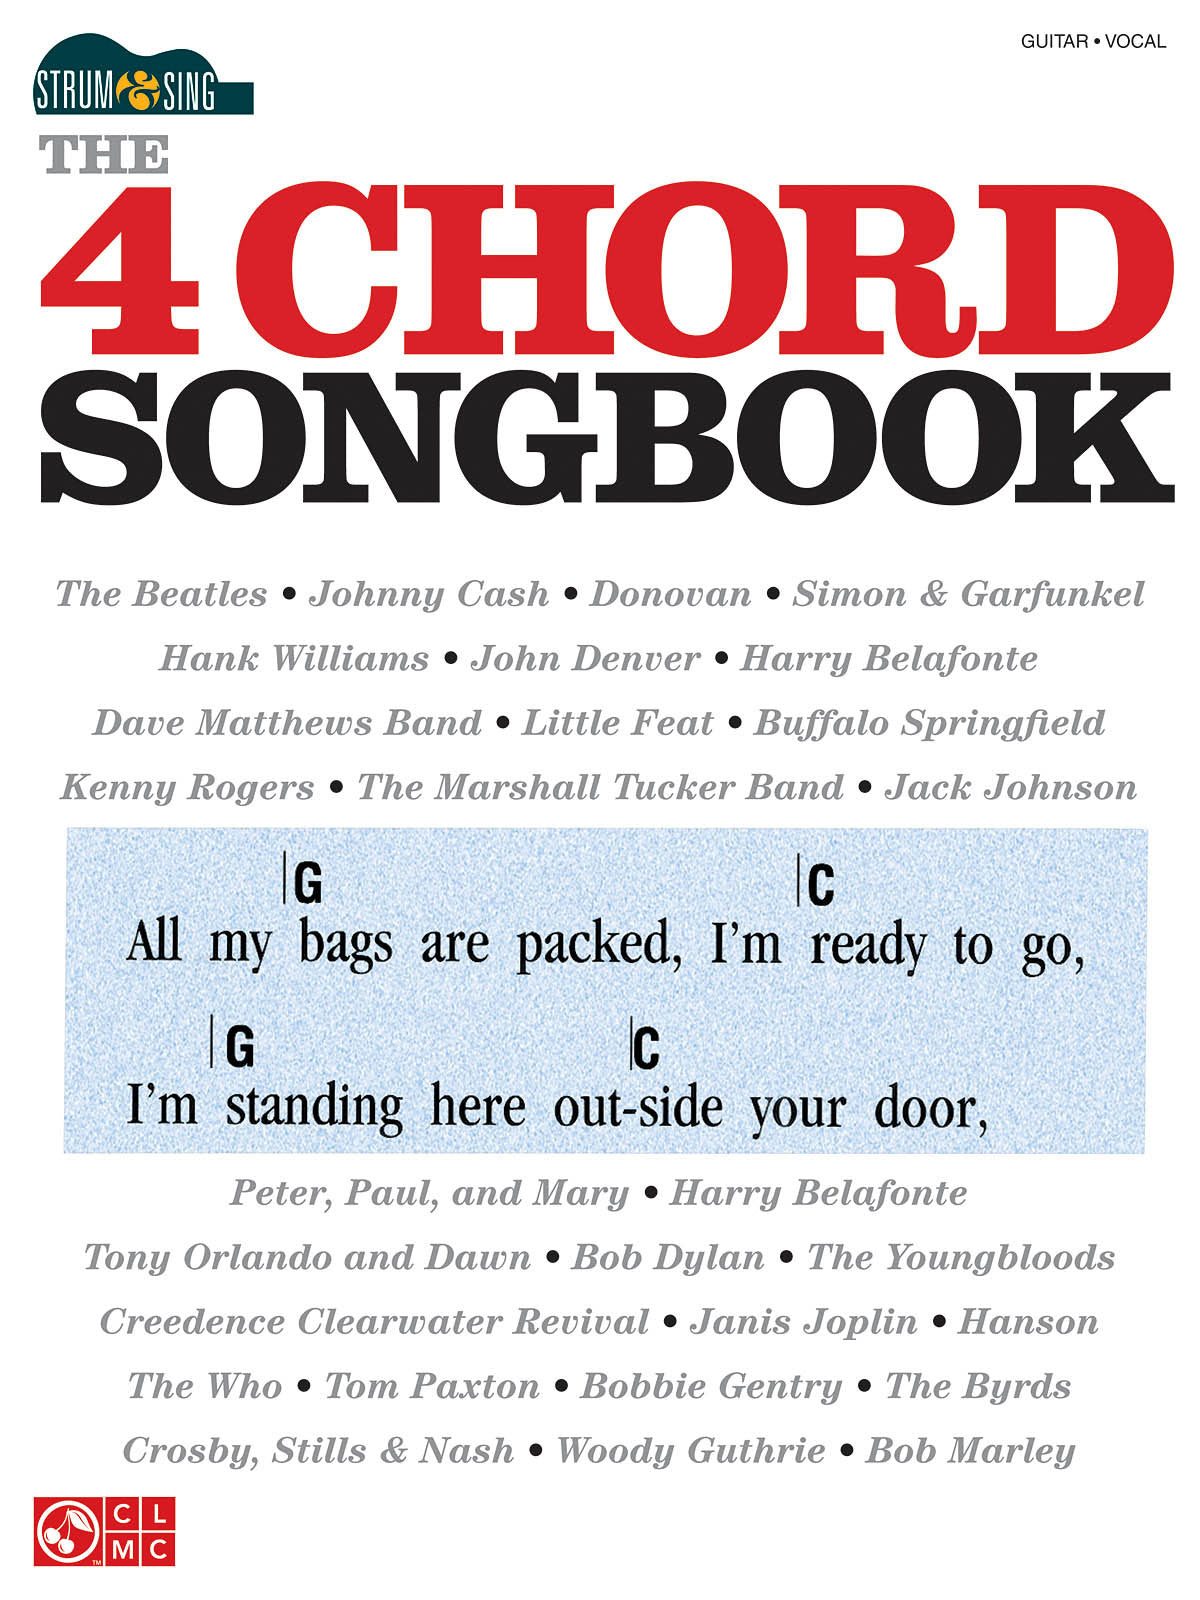 The 4 Chord Songbook Guitar Prodigy Playhouse